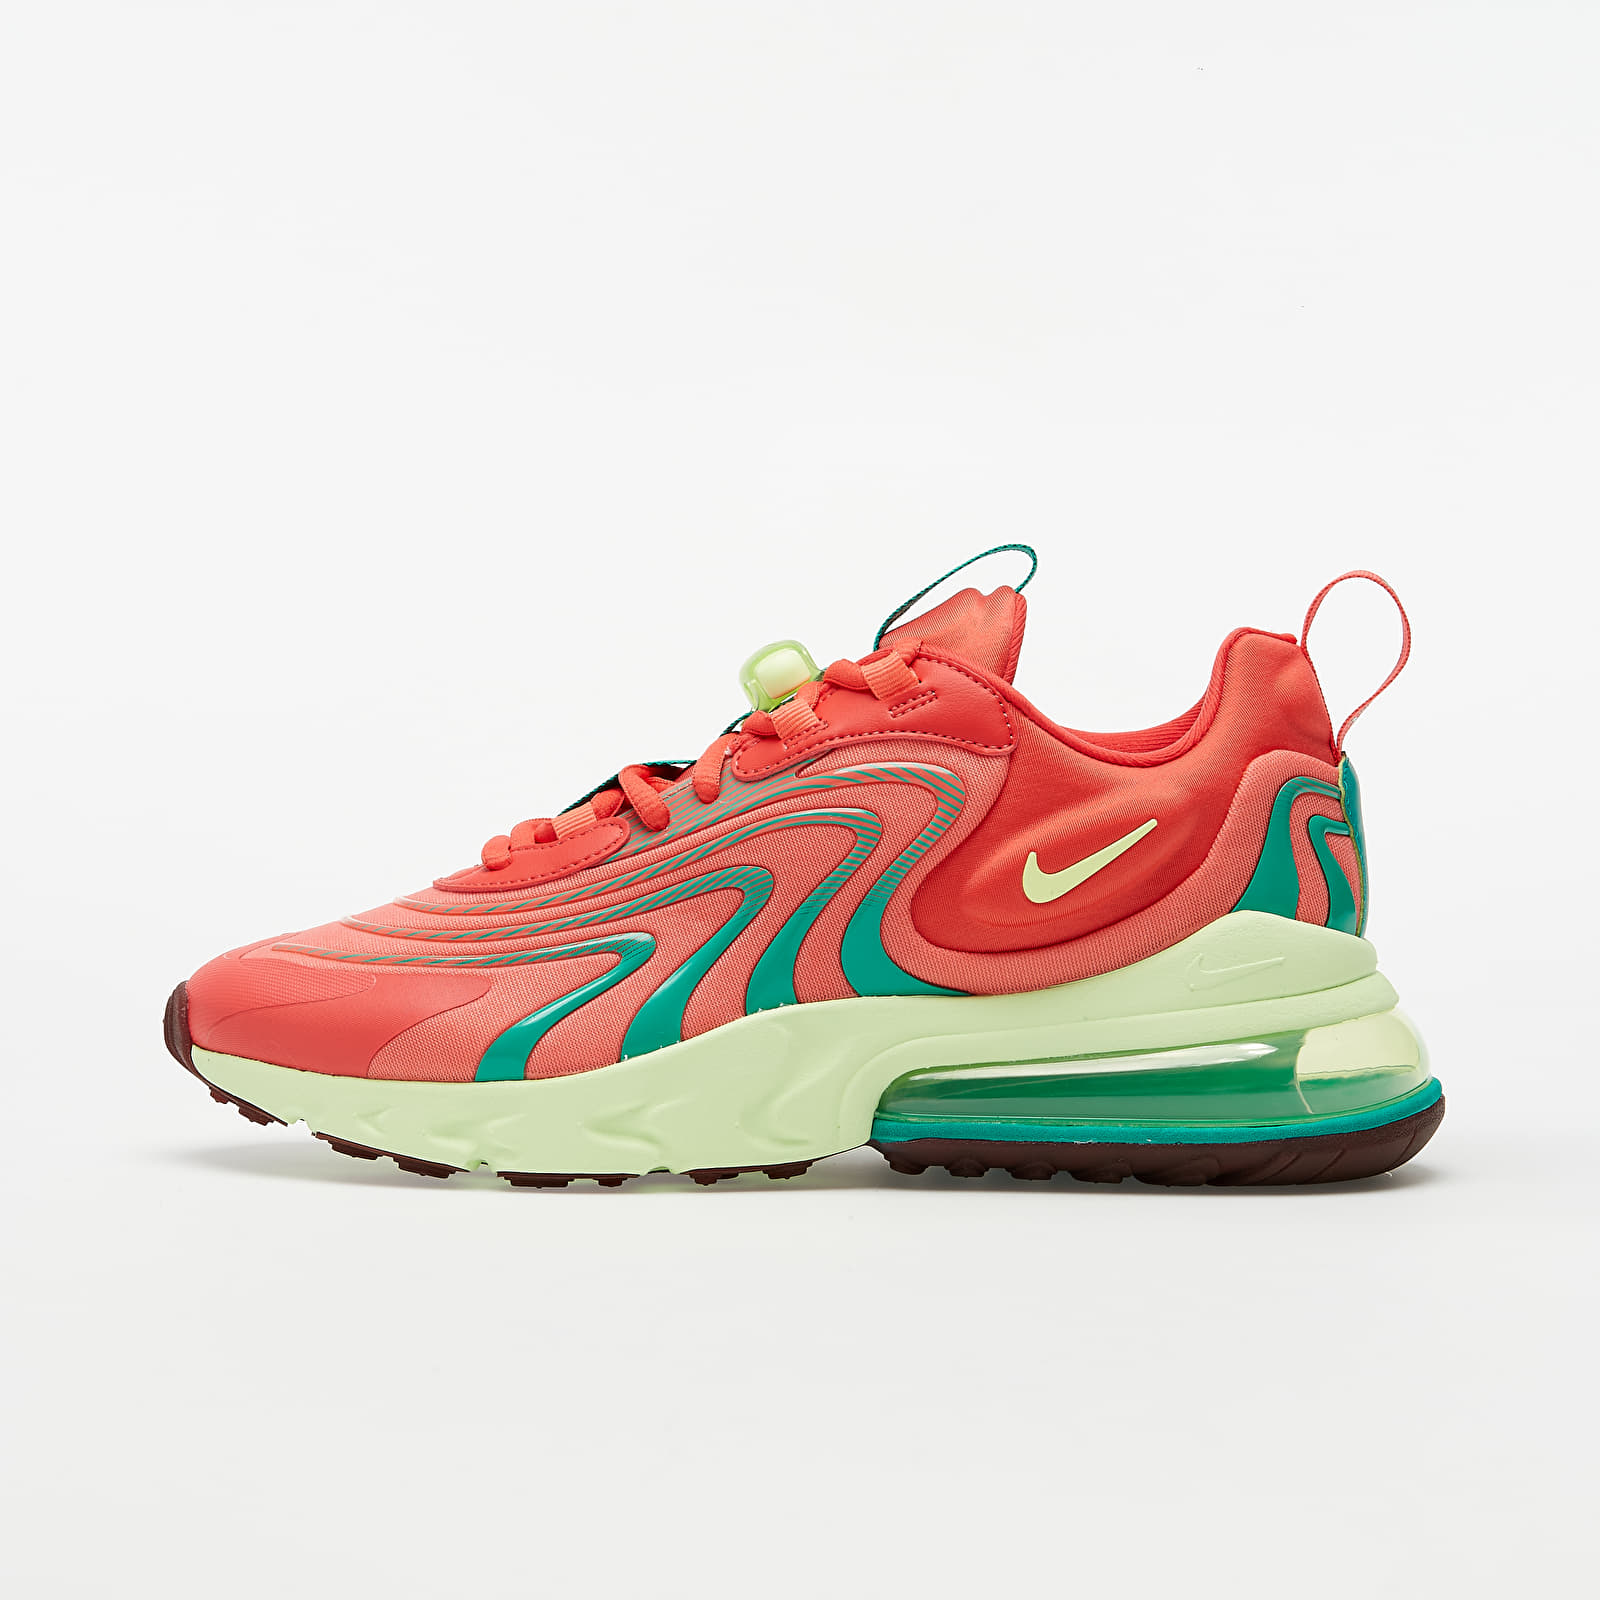 Nike Air Max 270 React ENG Track Red/ Barely Volt-Magic Ember EUR 42.5